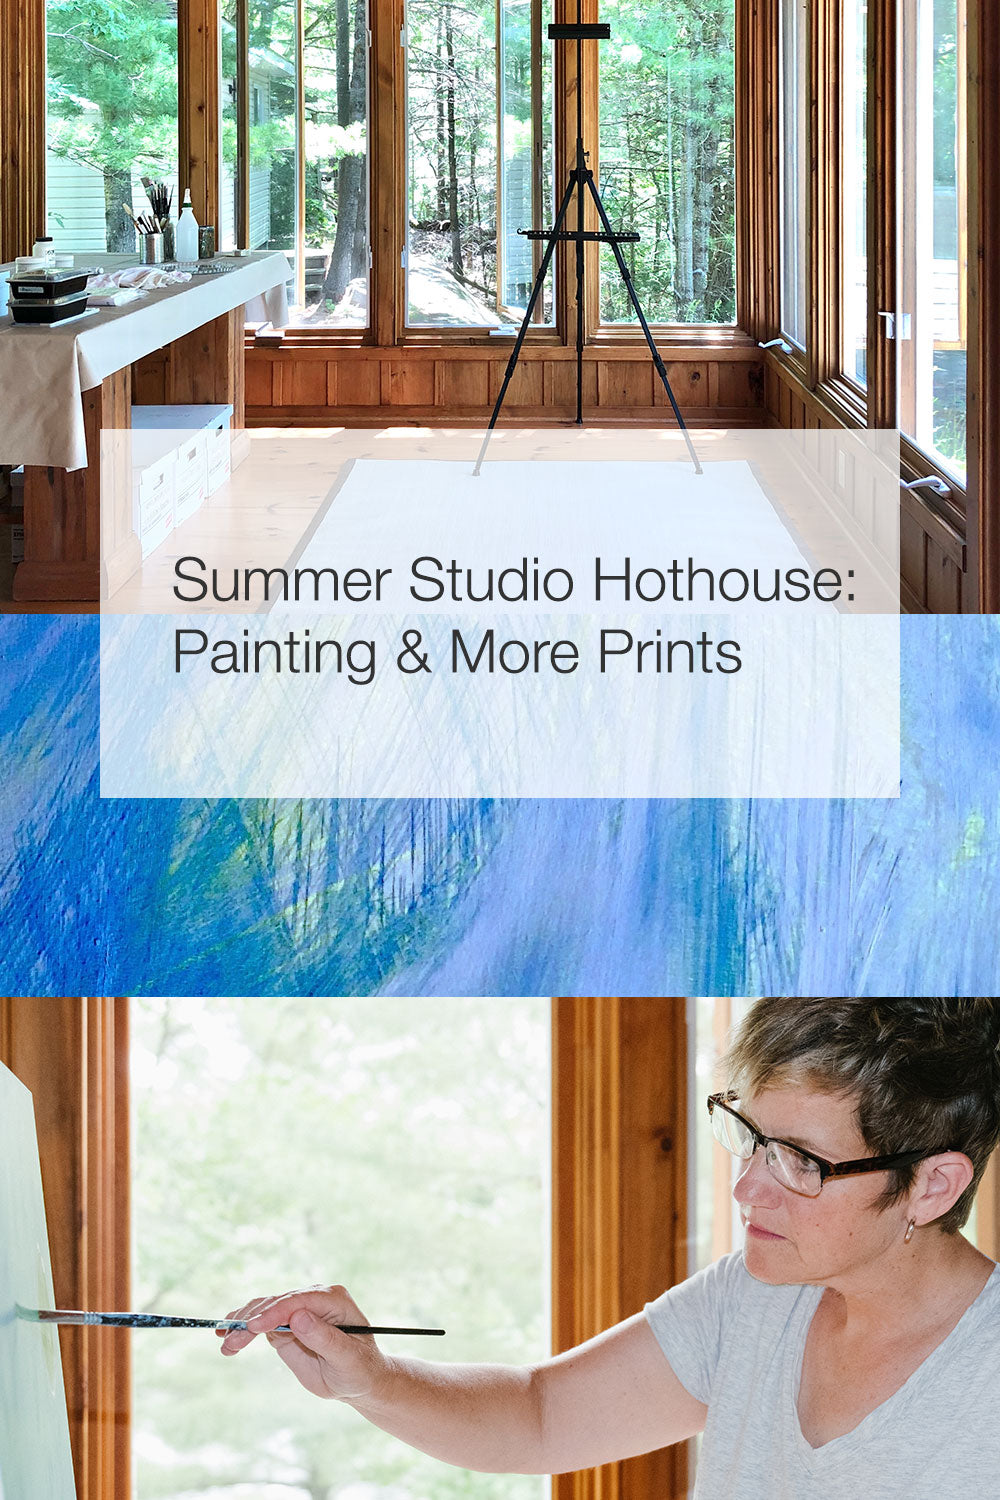 Summer studio, and Janet Taylor painting.